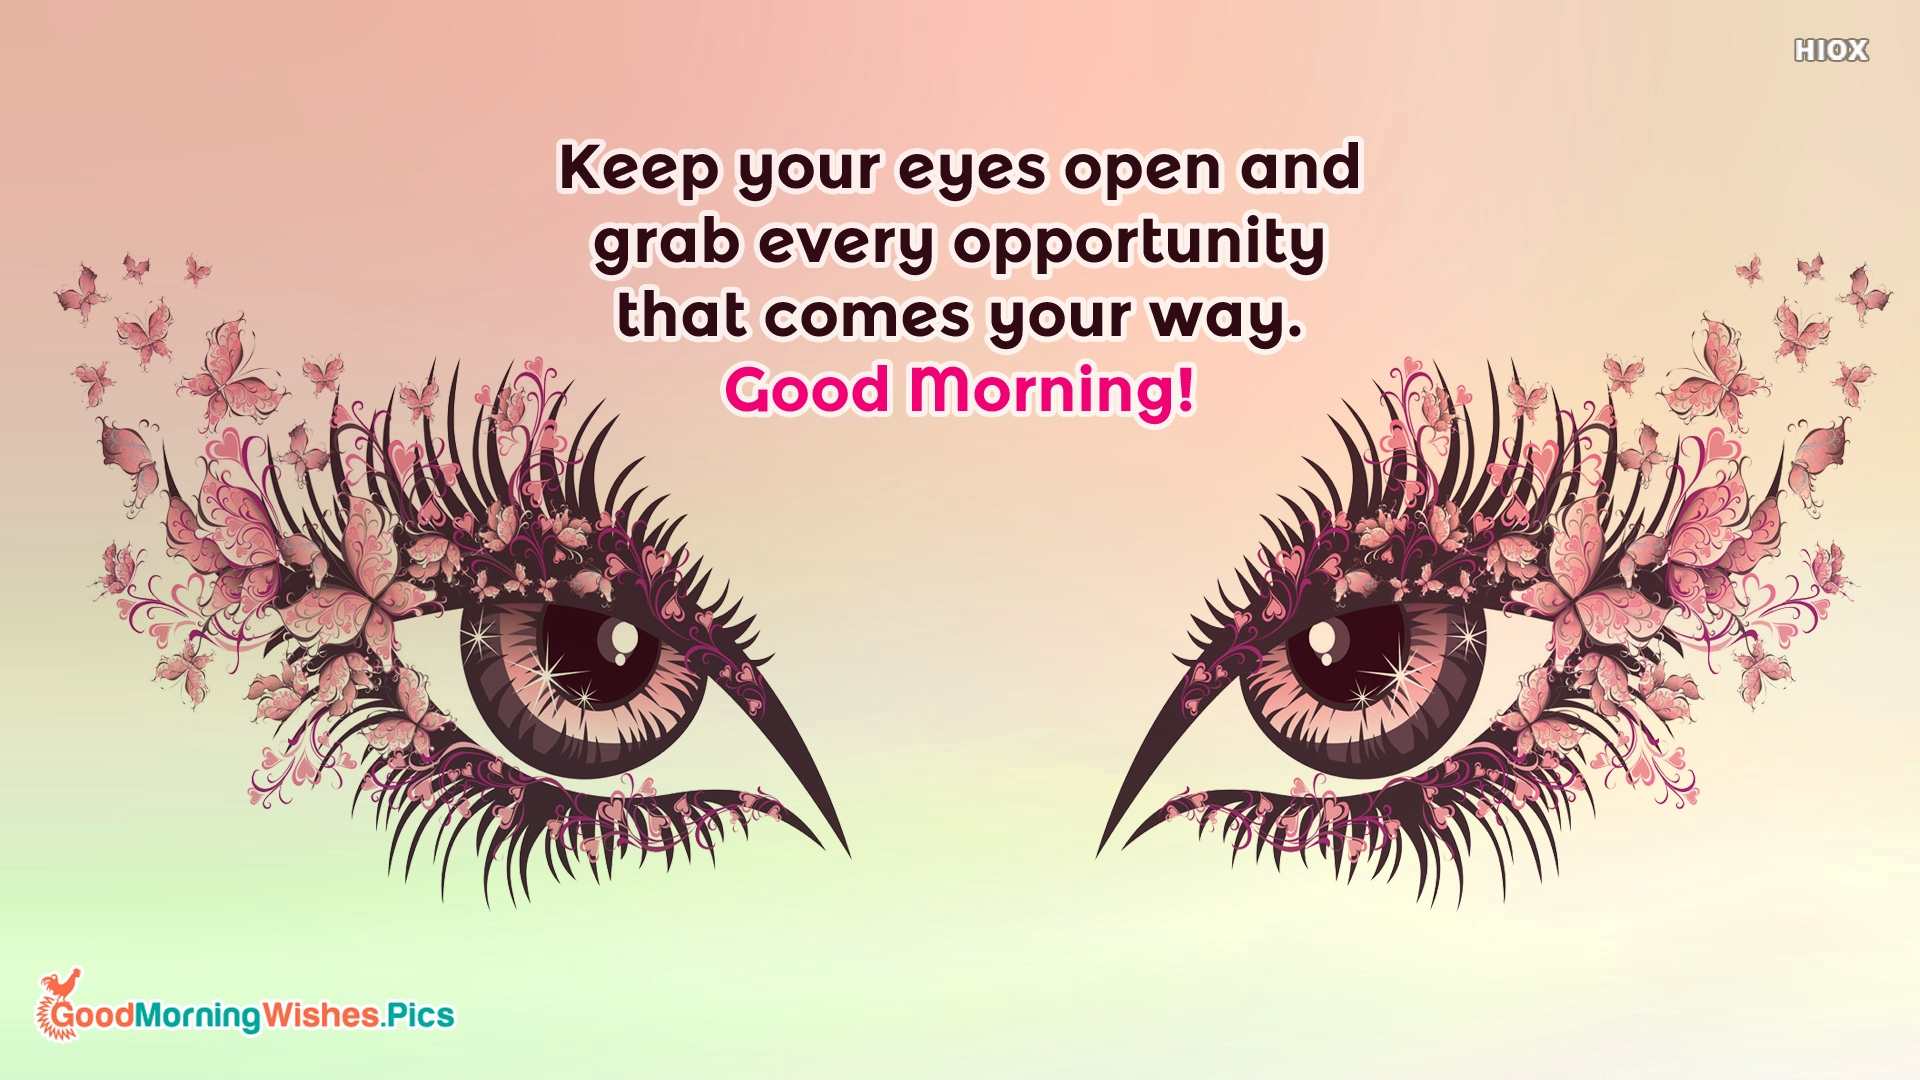 Keep Your Eyes Open and Grab Every Opportunity That Comes Your Way. Good Morning!